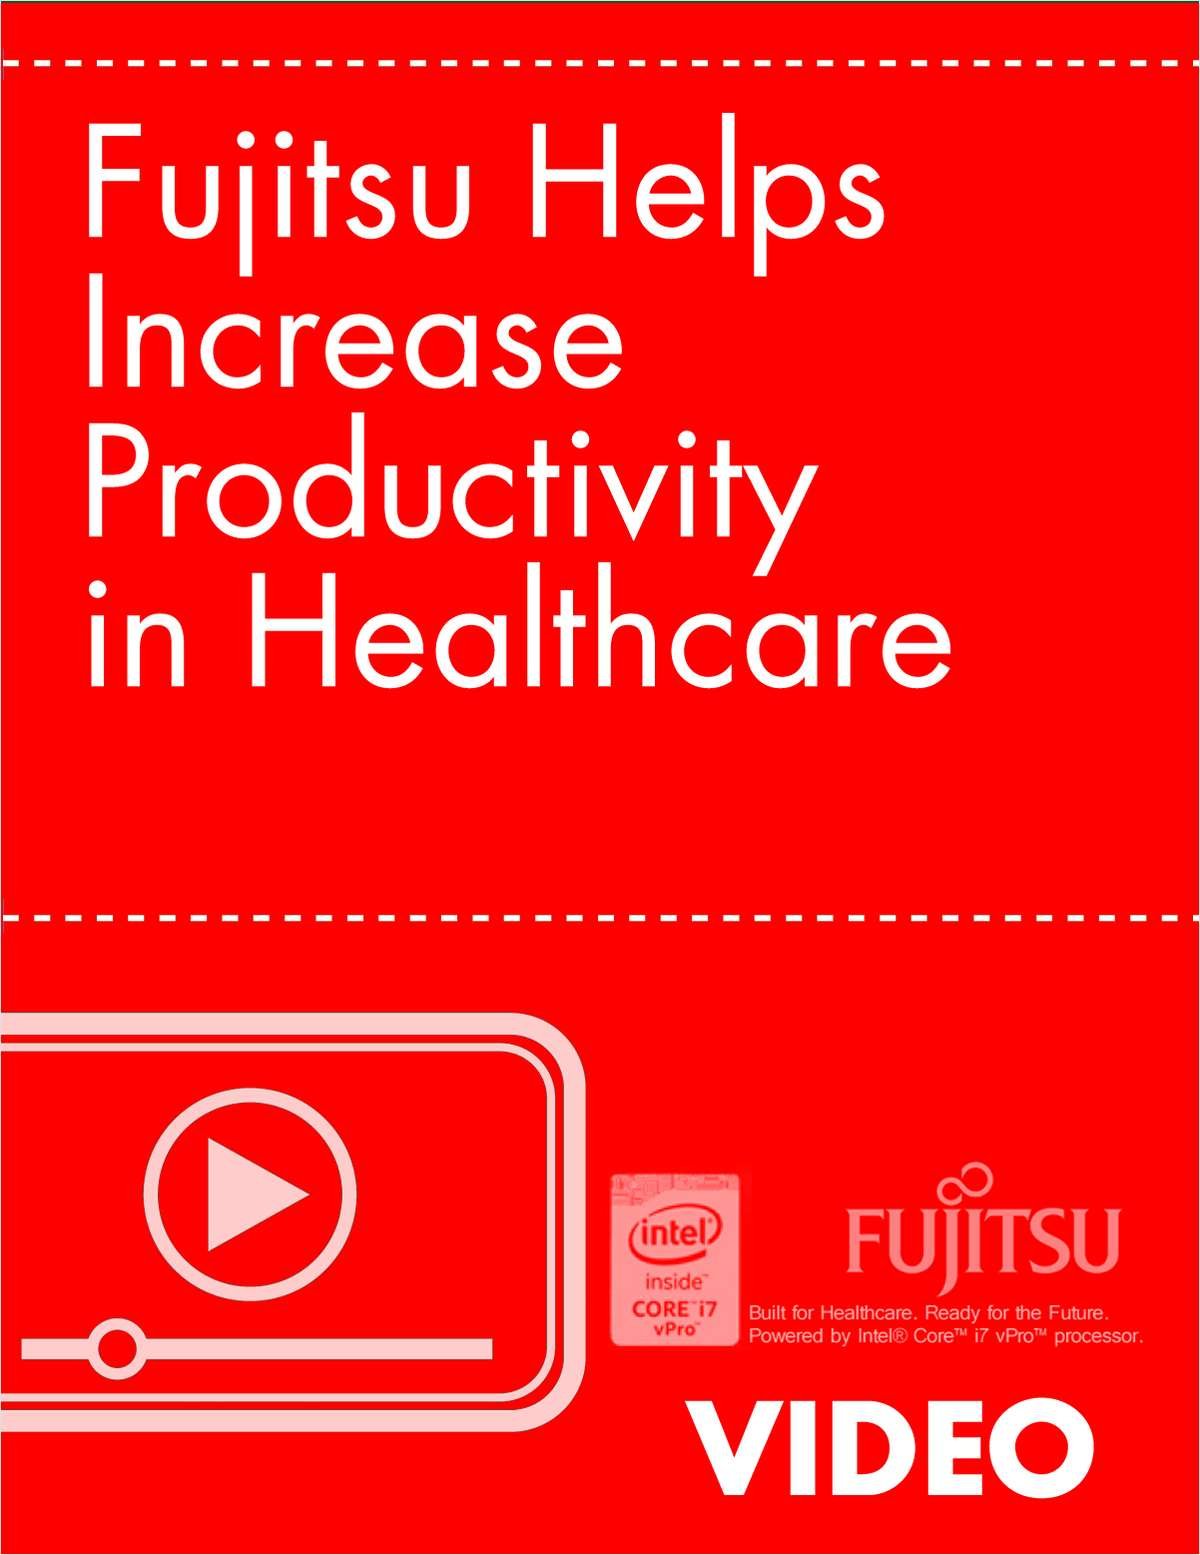 Fujitsu Helps Increase Productivity in Healthcare